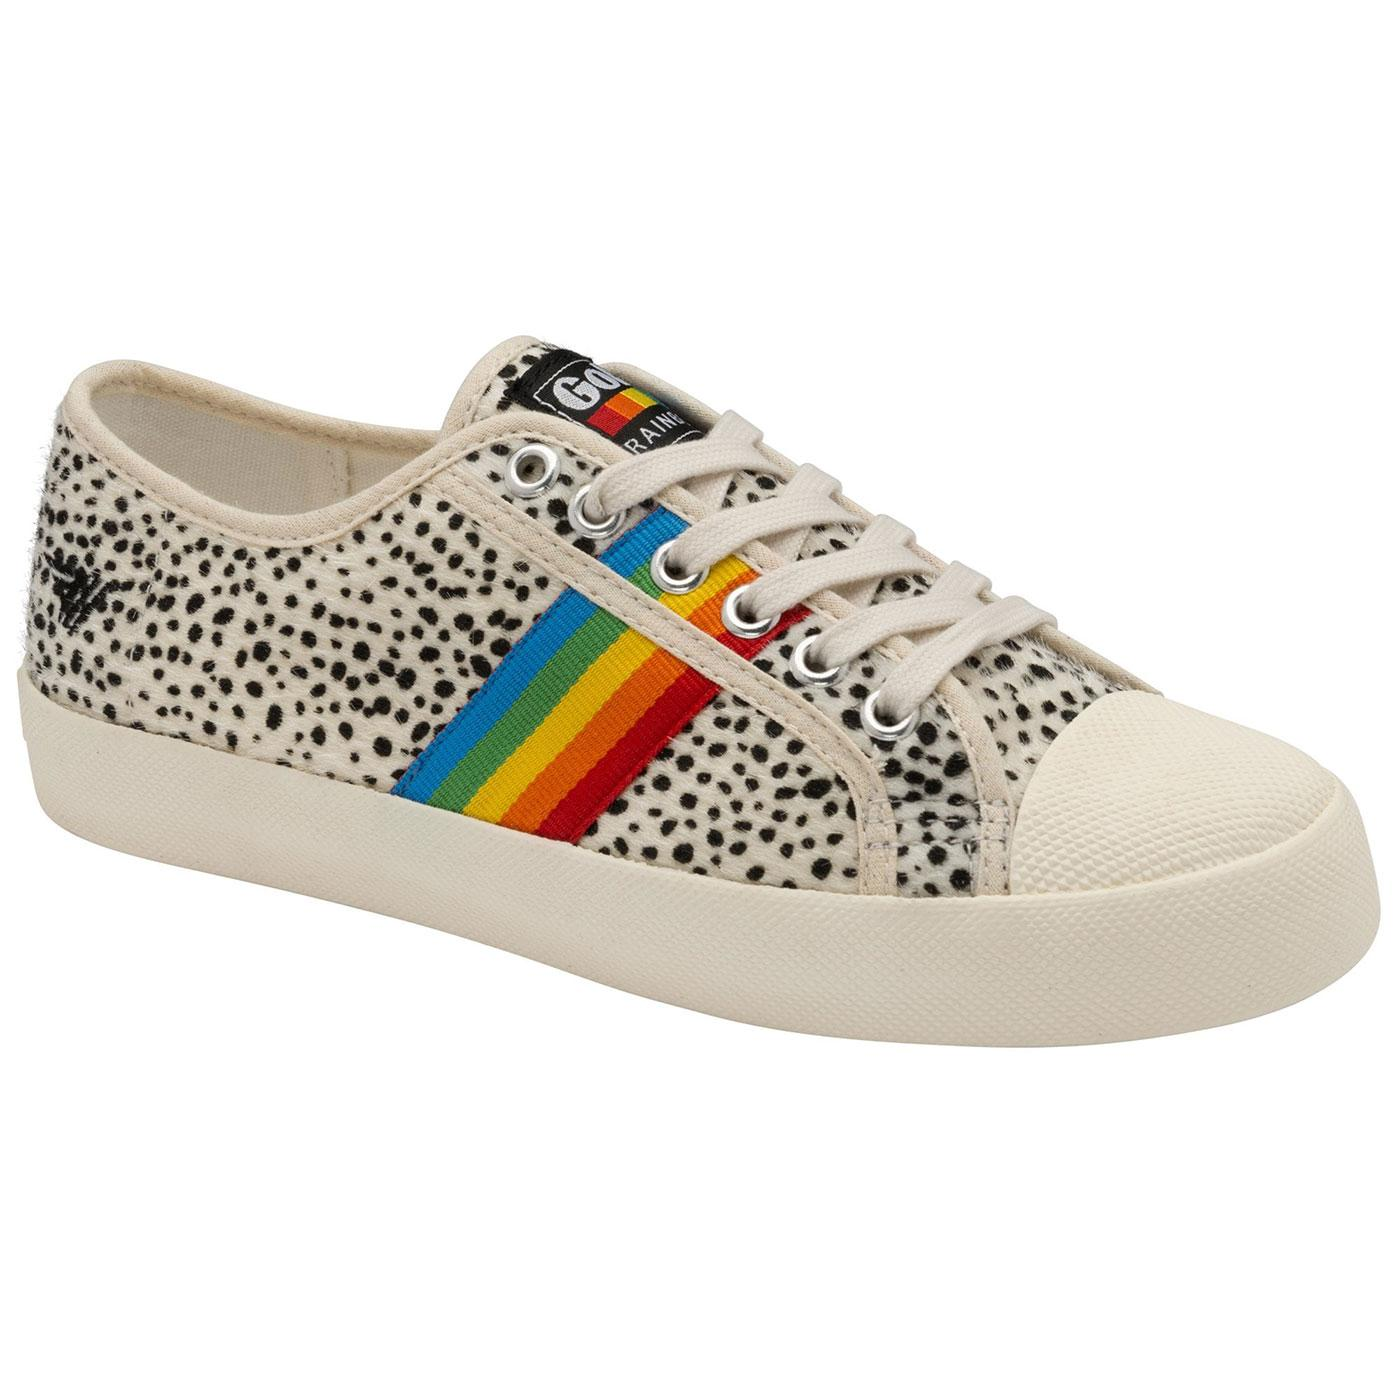 Coaster Rainbow Cheetah GOLA Retro Trainers (OW)